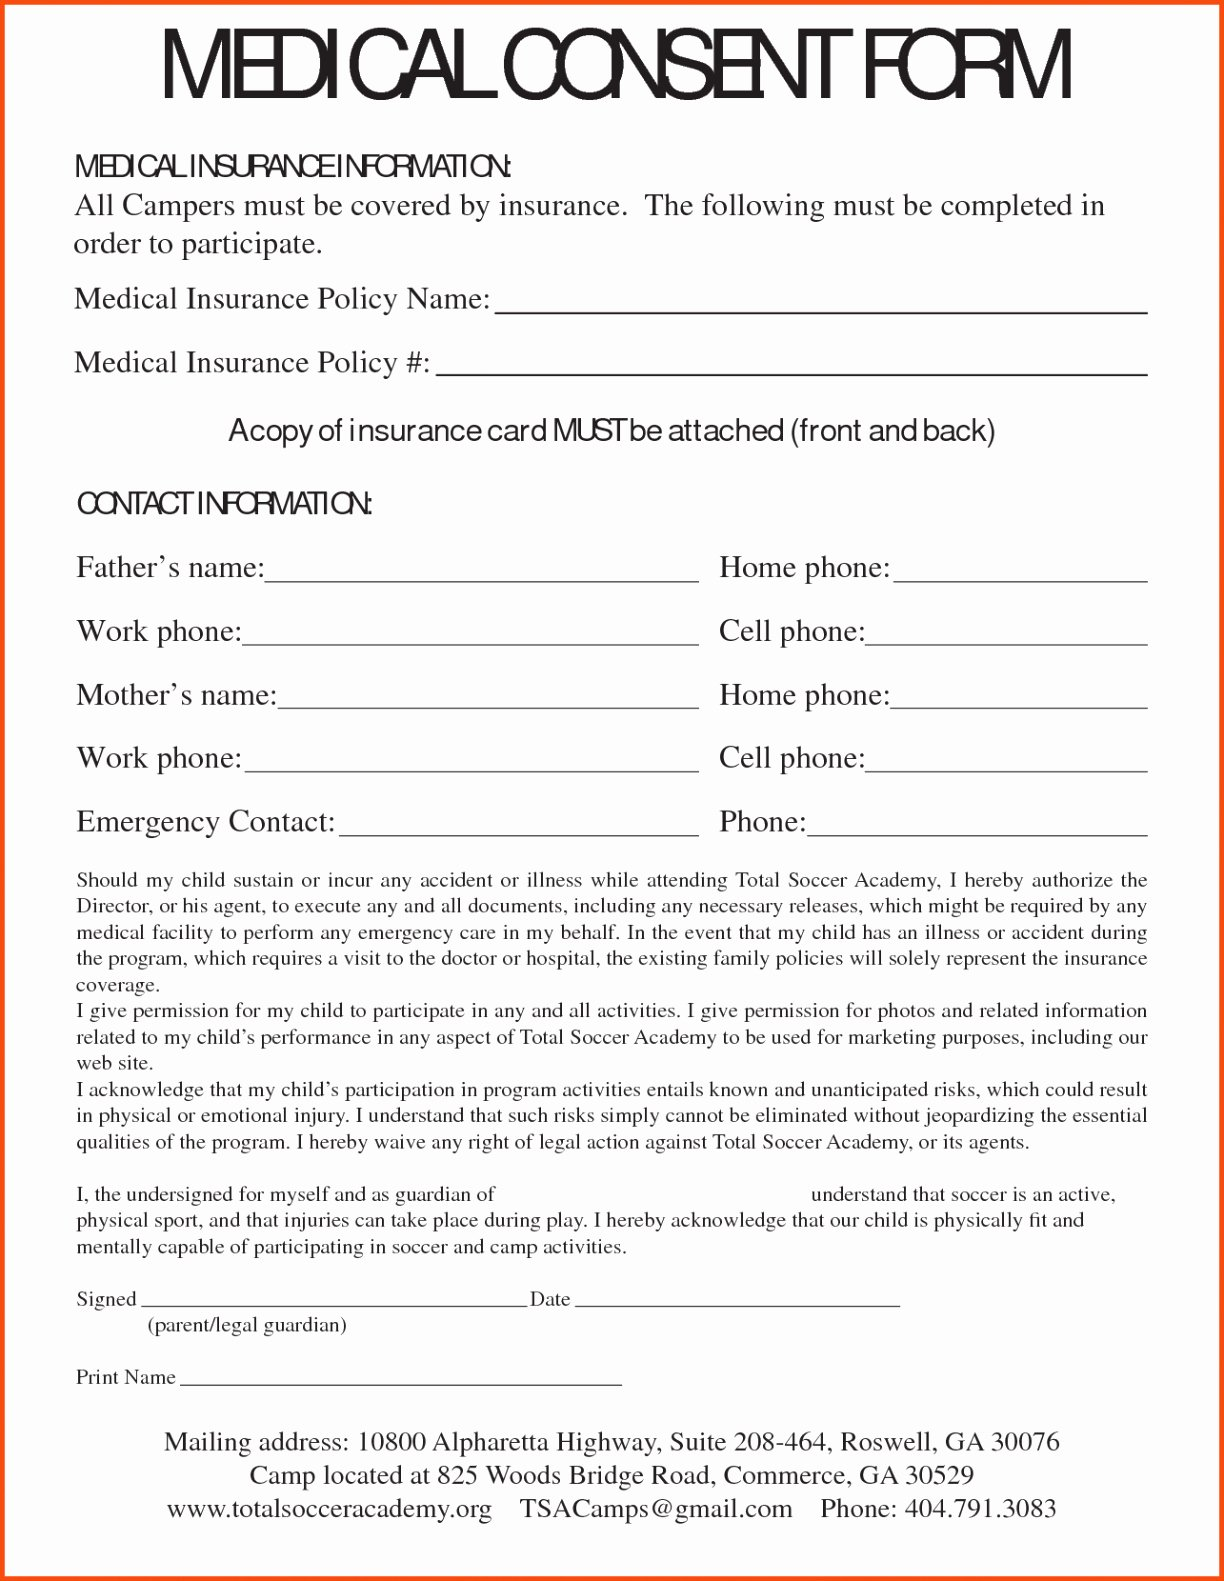 Parents Consent form Template Inspirational Medical Consent Letter for Grandparents Template